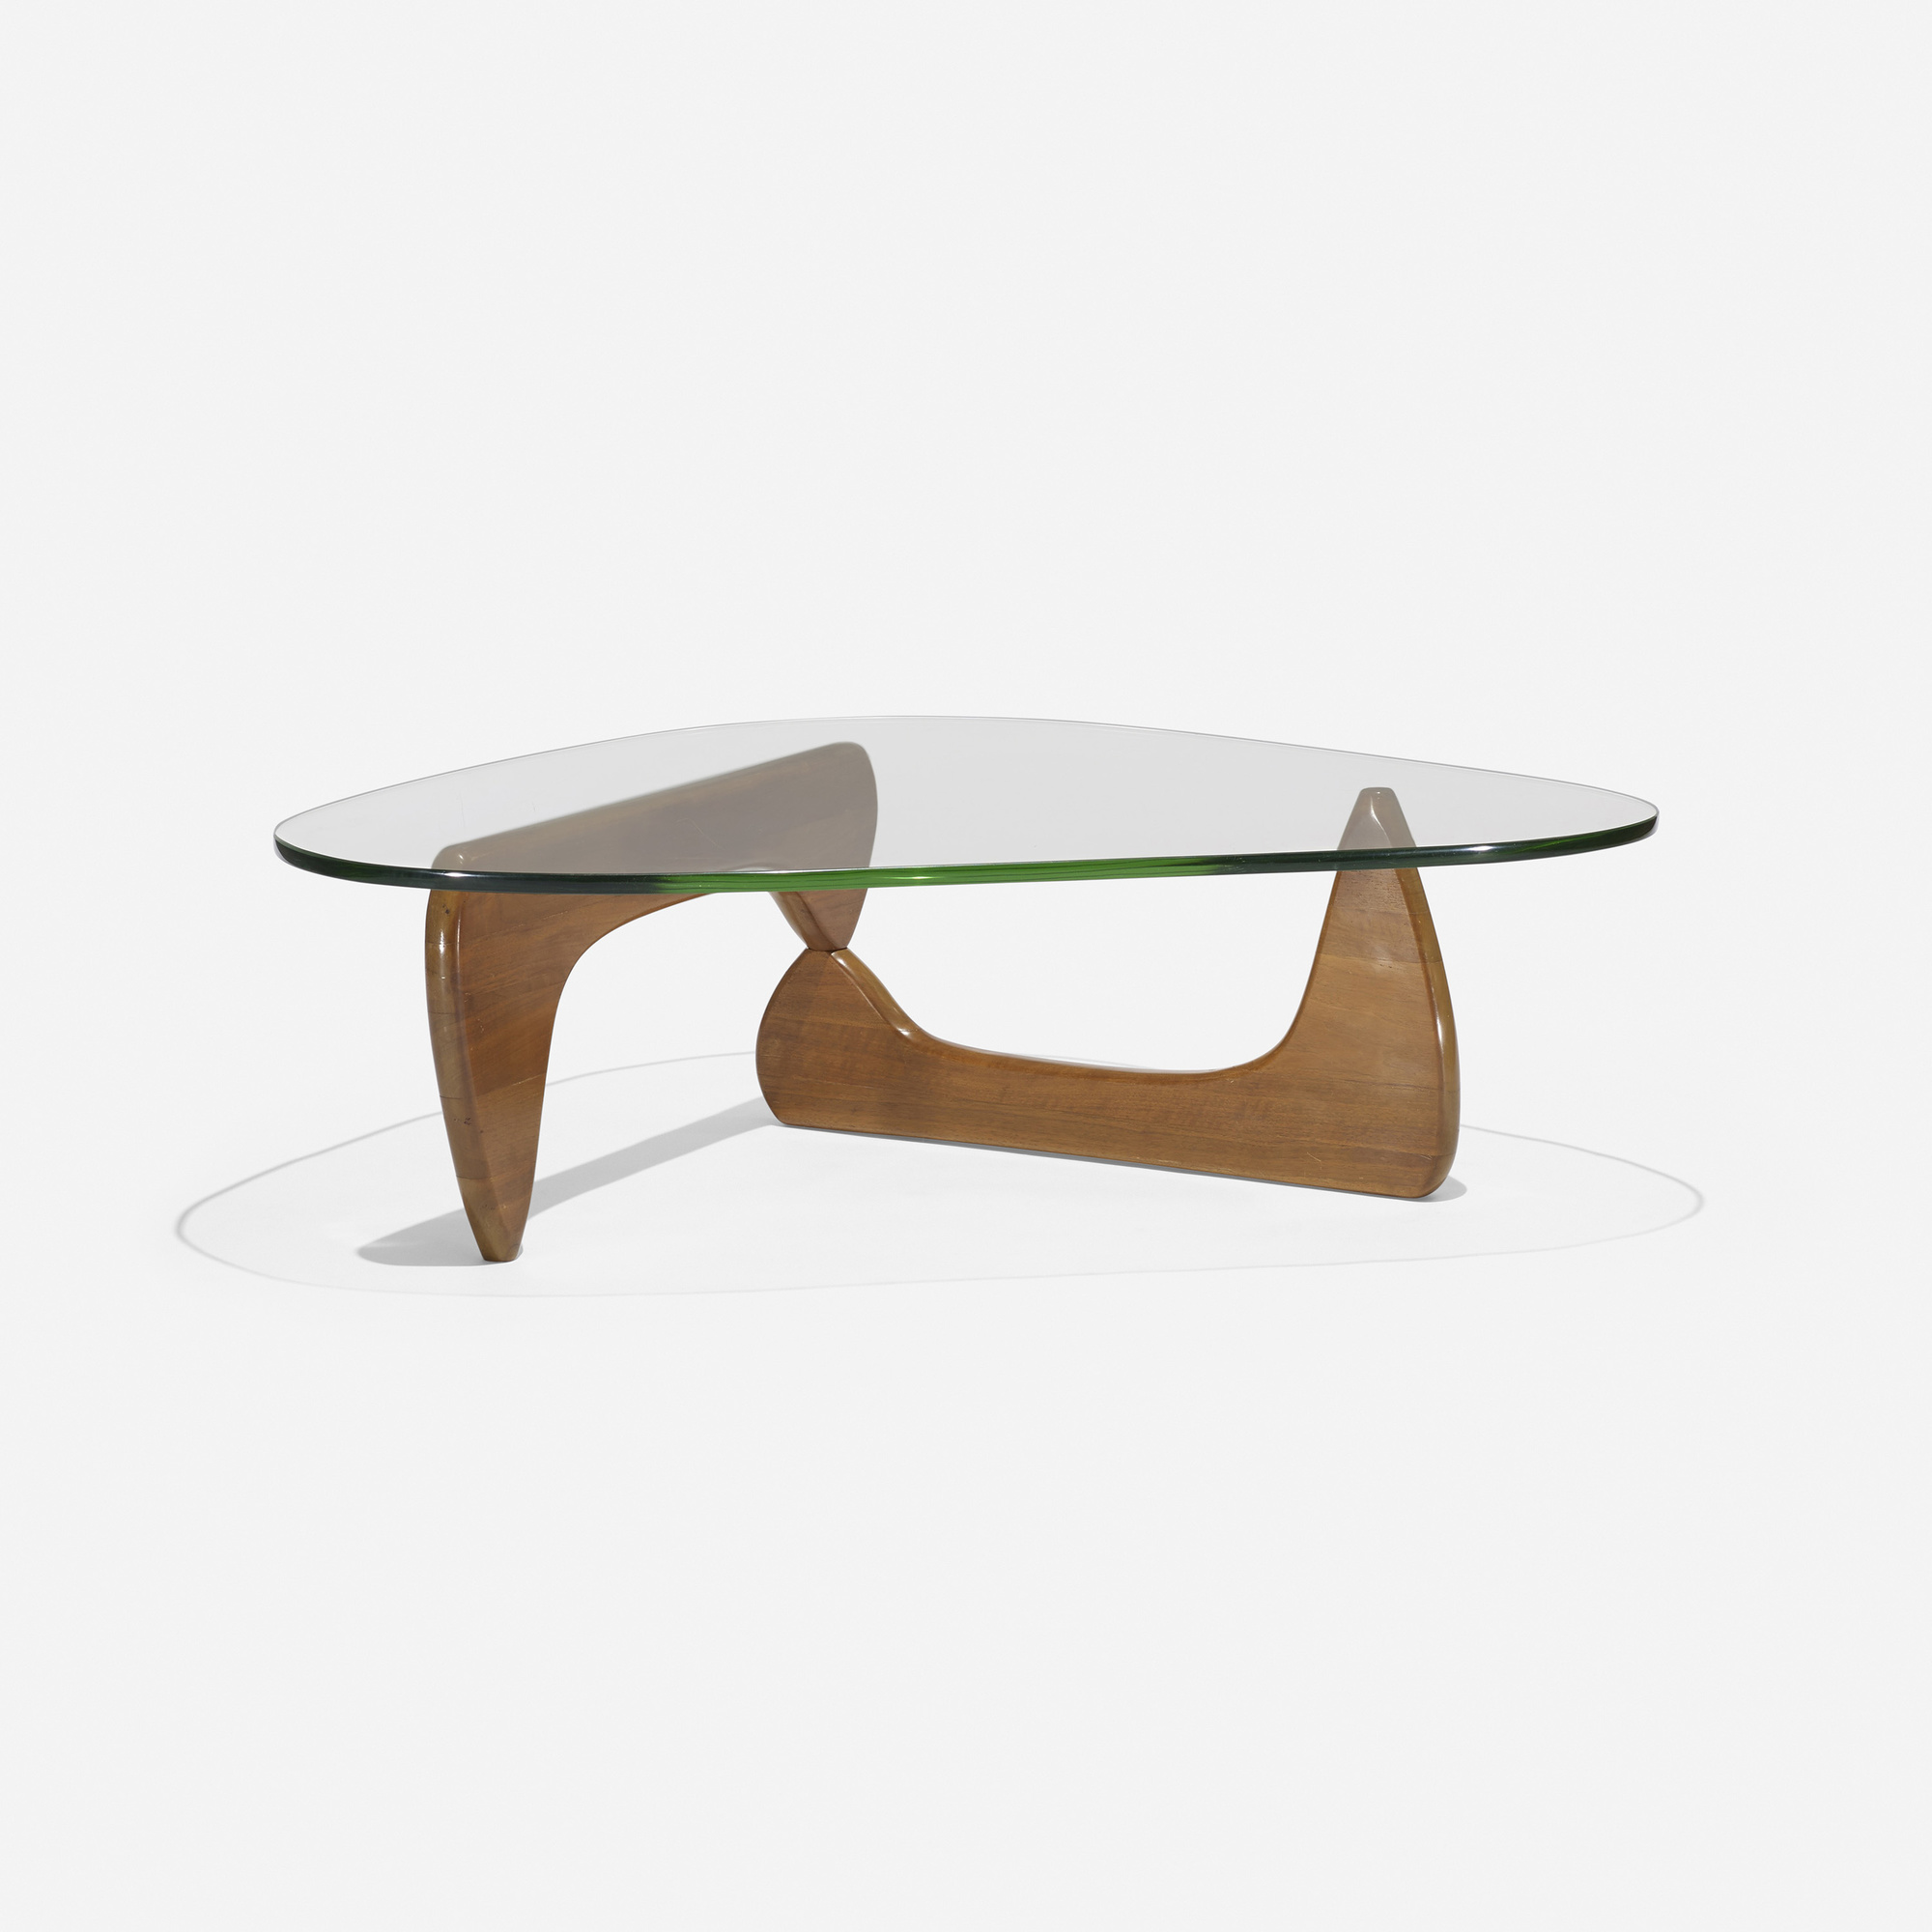 158: Isamu Noguchi / Coffee Table, Model IN 50 (1 Of 3